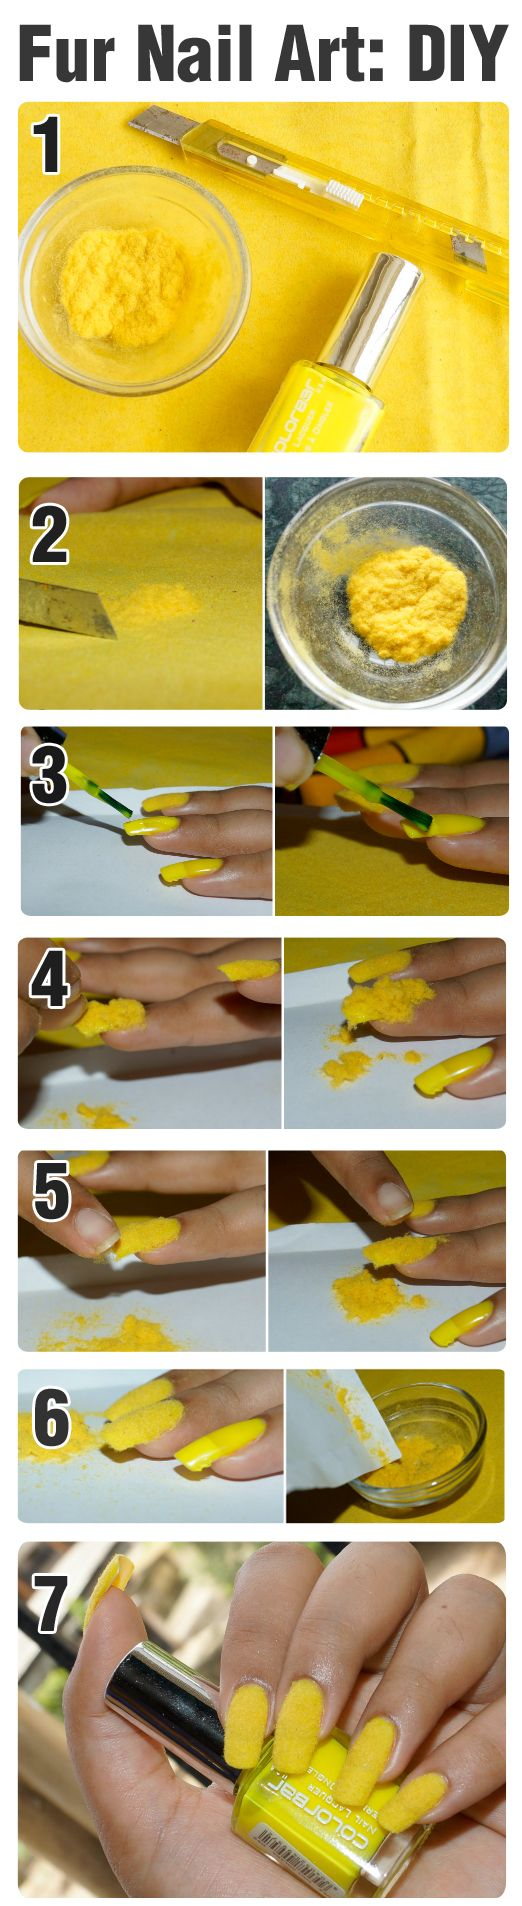 "Homemade flocking powder pictorial: Use a straight blade to ""shave"" material of your desired color to create flocking powder and save it in a bowl. Paint your nails with a similar color polish and while still wet, with paper underneath,  sprinkle the powder over the nails. Use the paper to save the remaining powder."